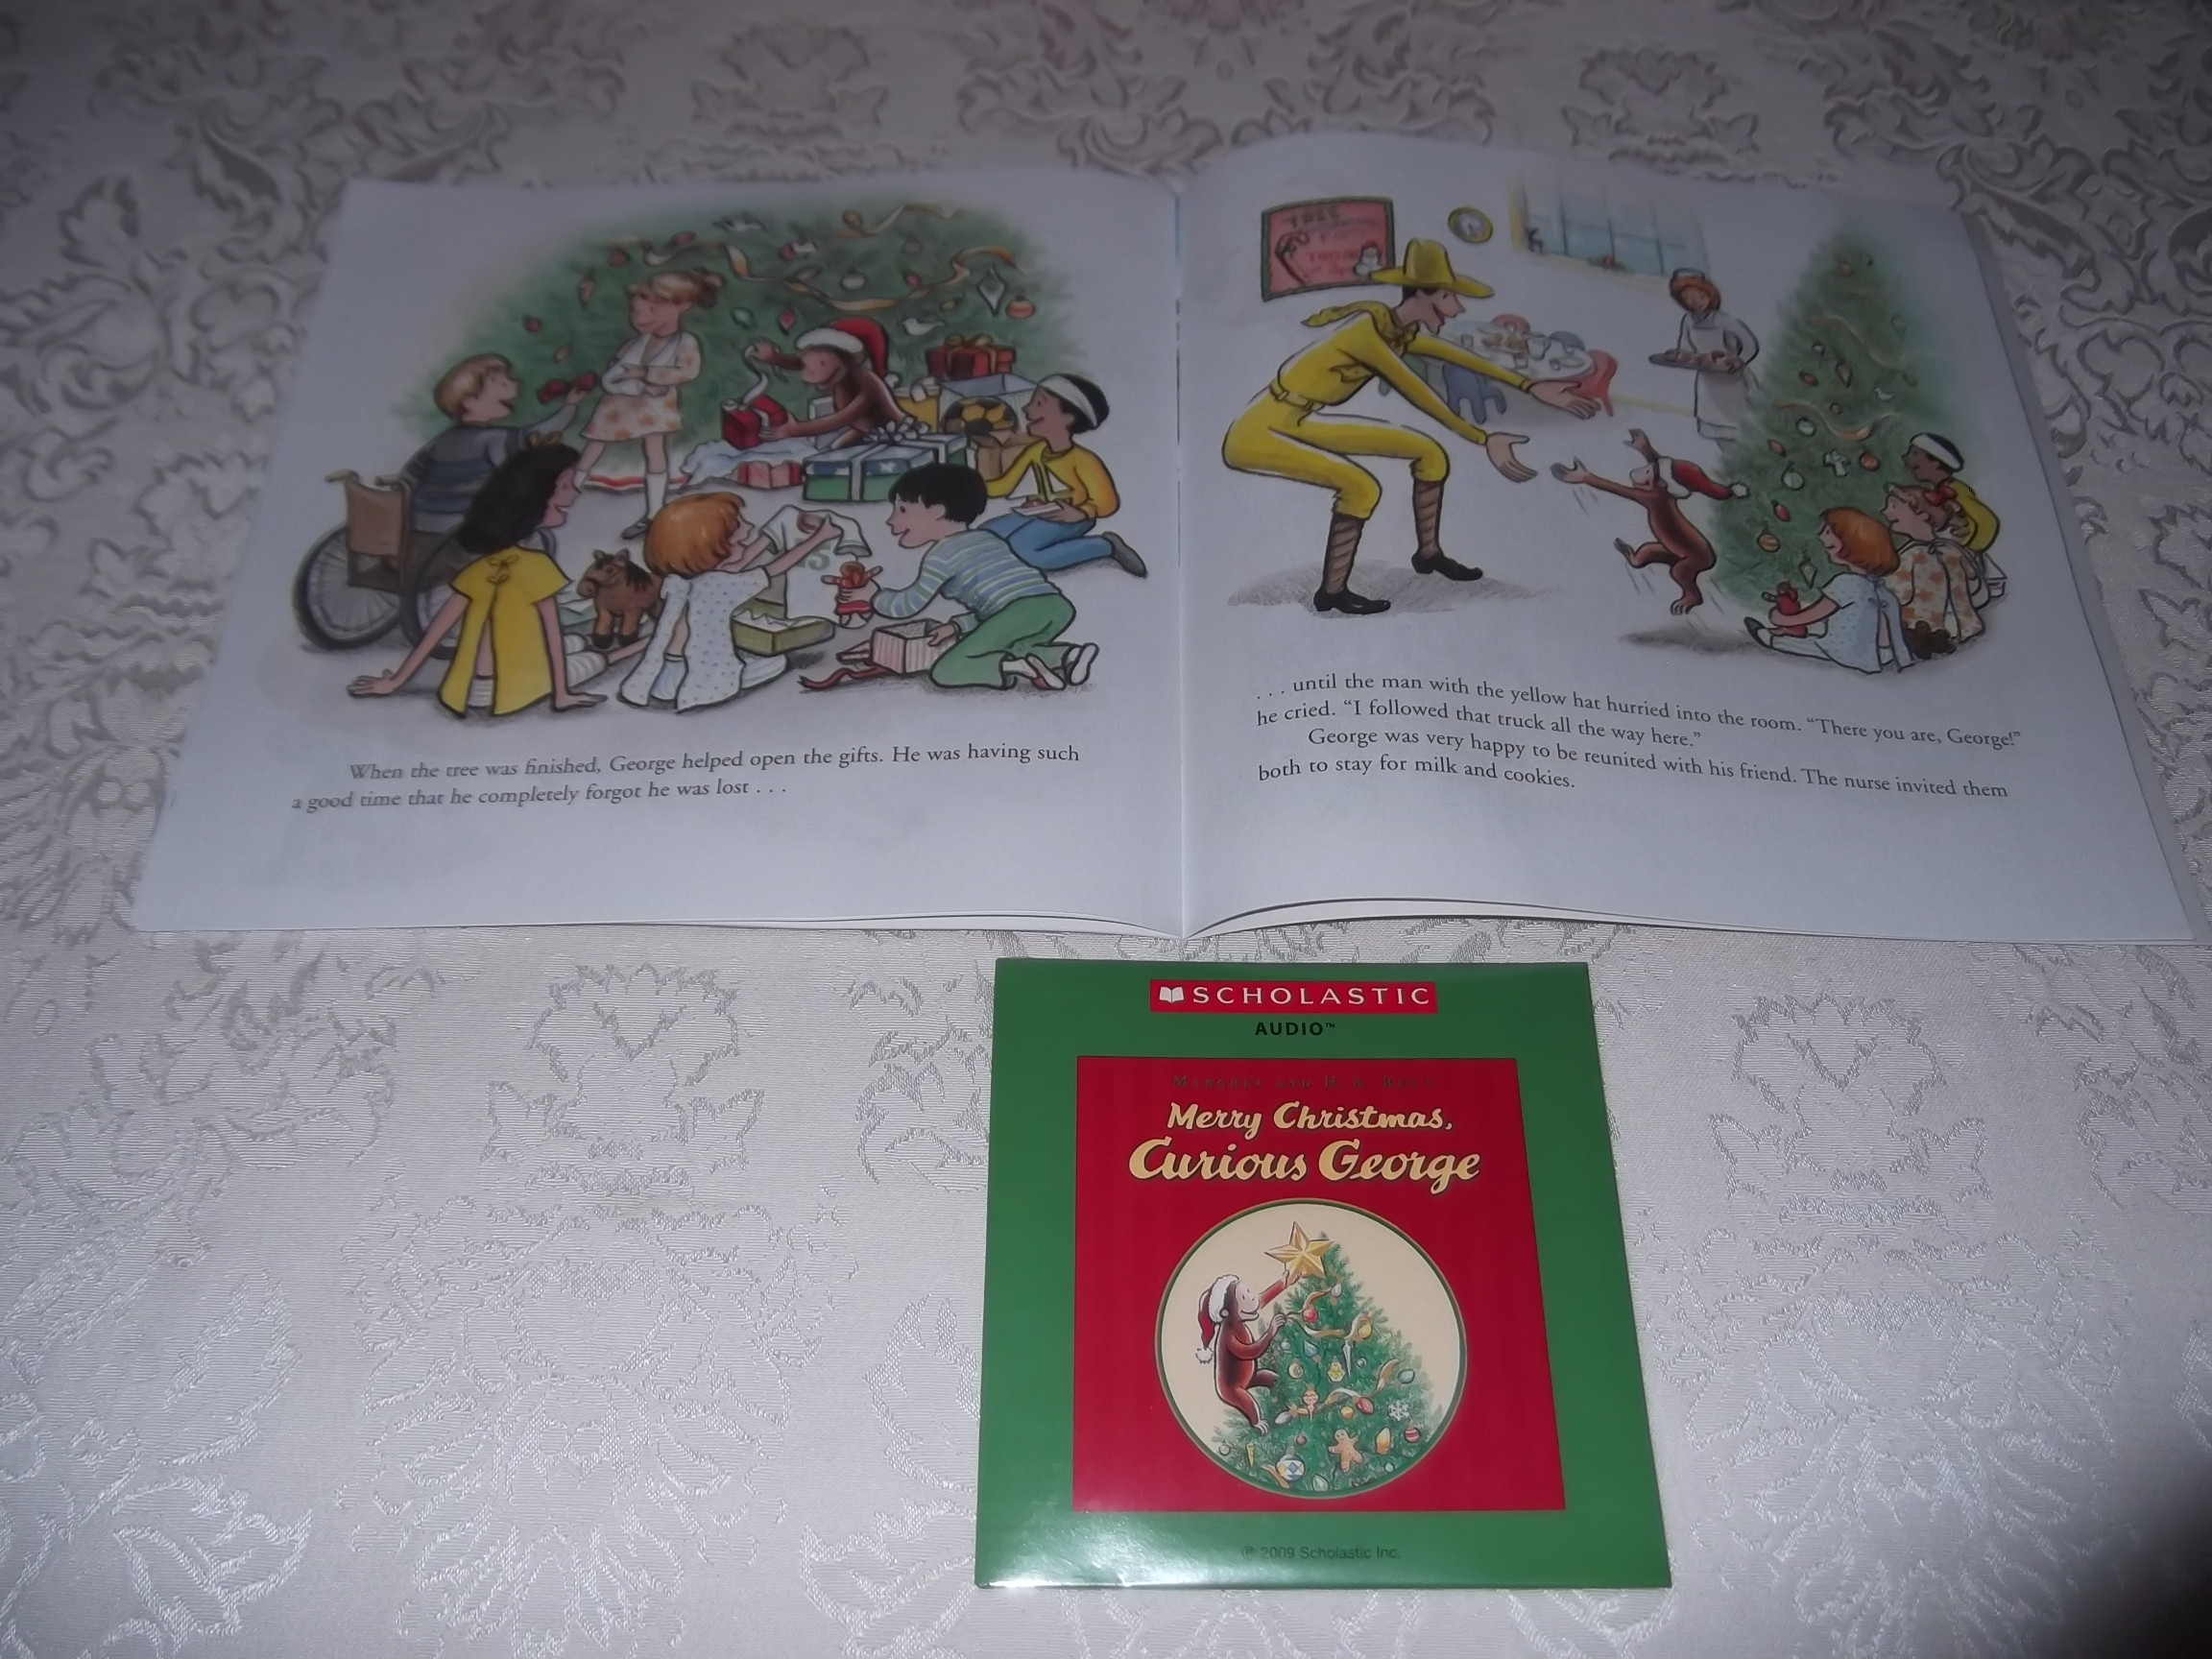 Image 5 of Merry Christmas, Curious George Margret and H.A. Rey Brand New Audio CD and SC